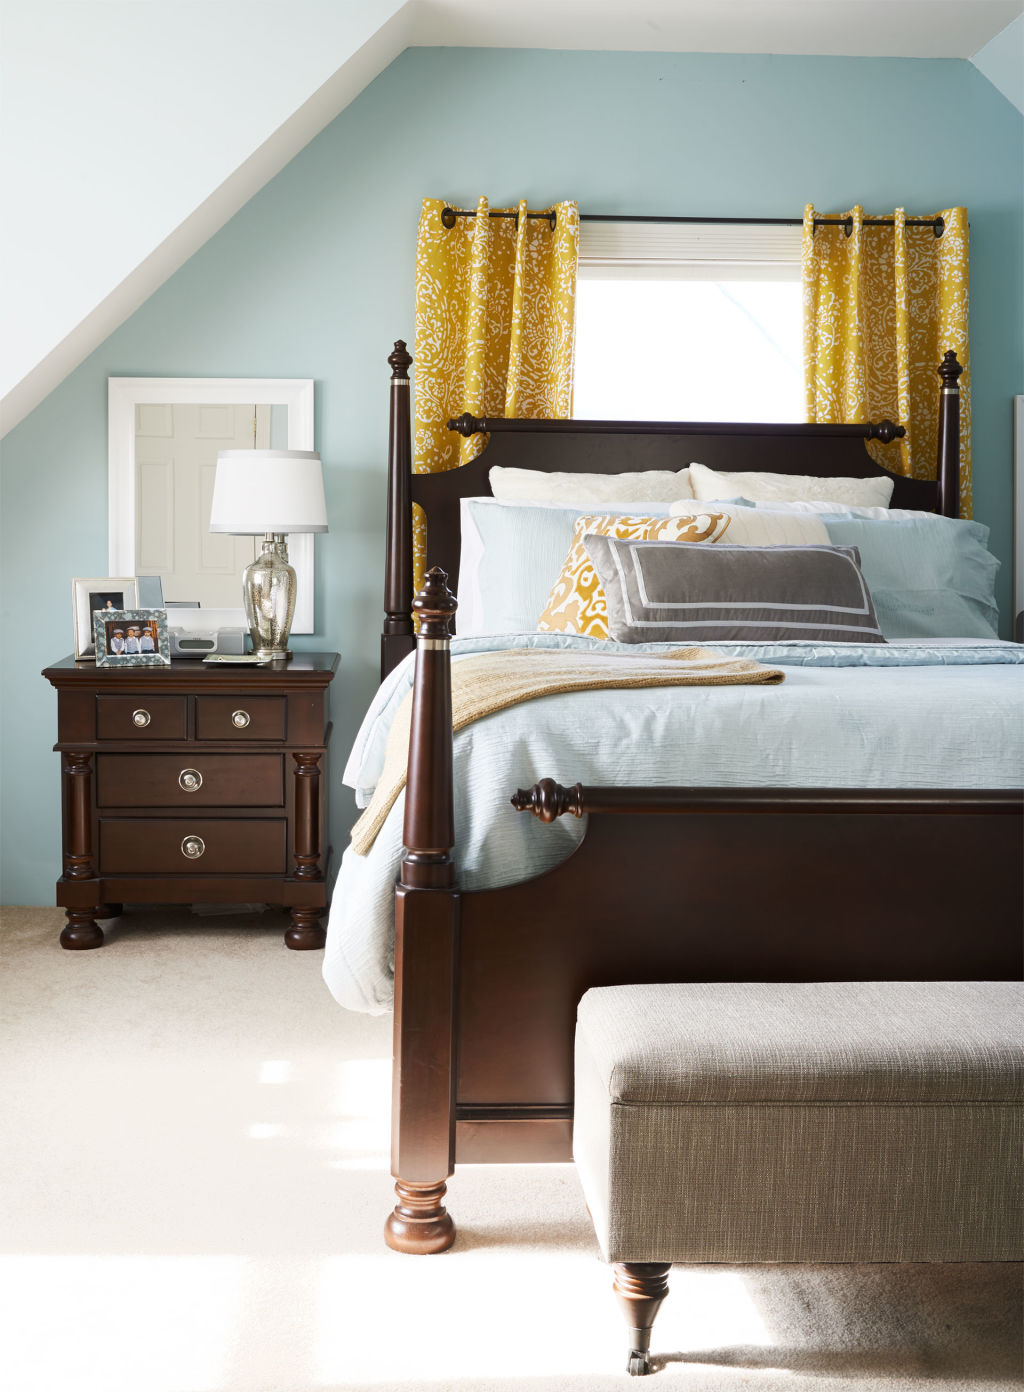 Organizing your bedroom how to declutter your bedroom for Declutter bedroom ideas